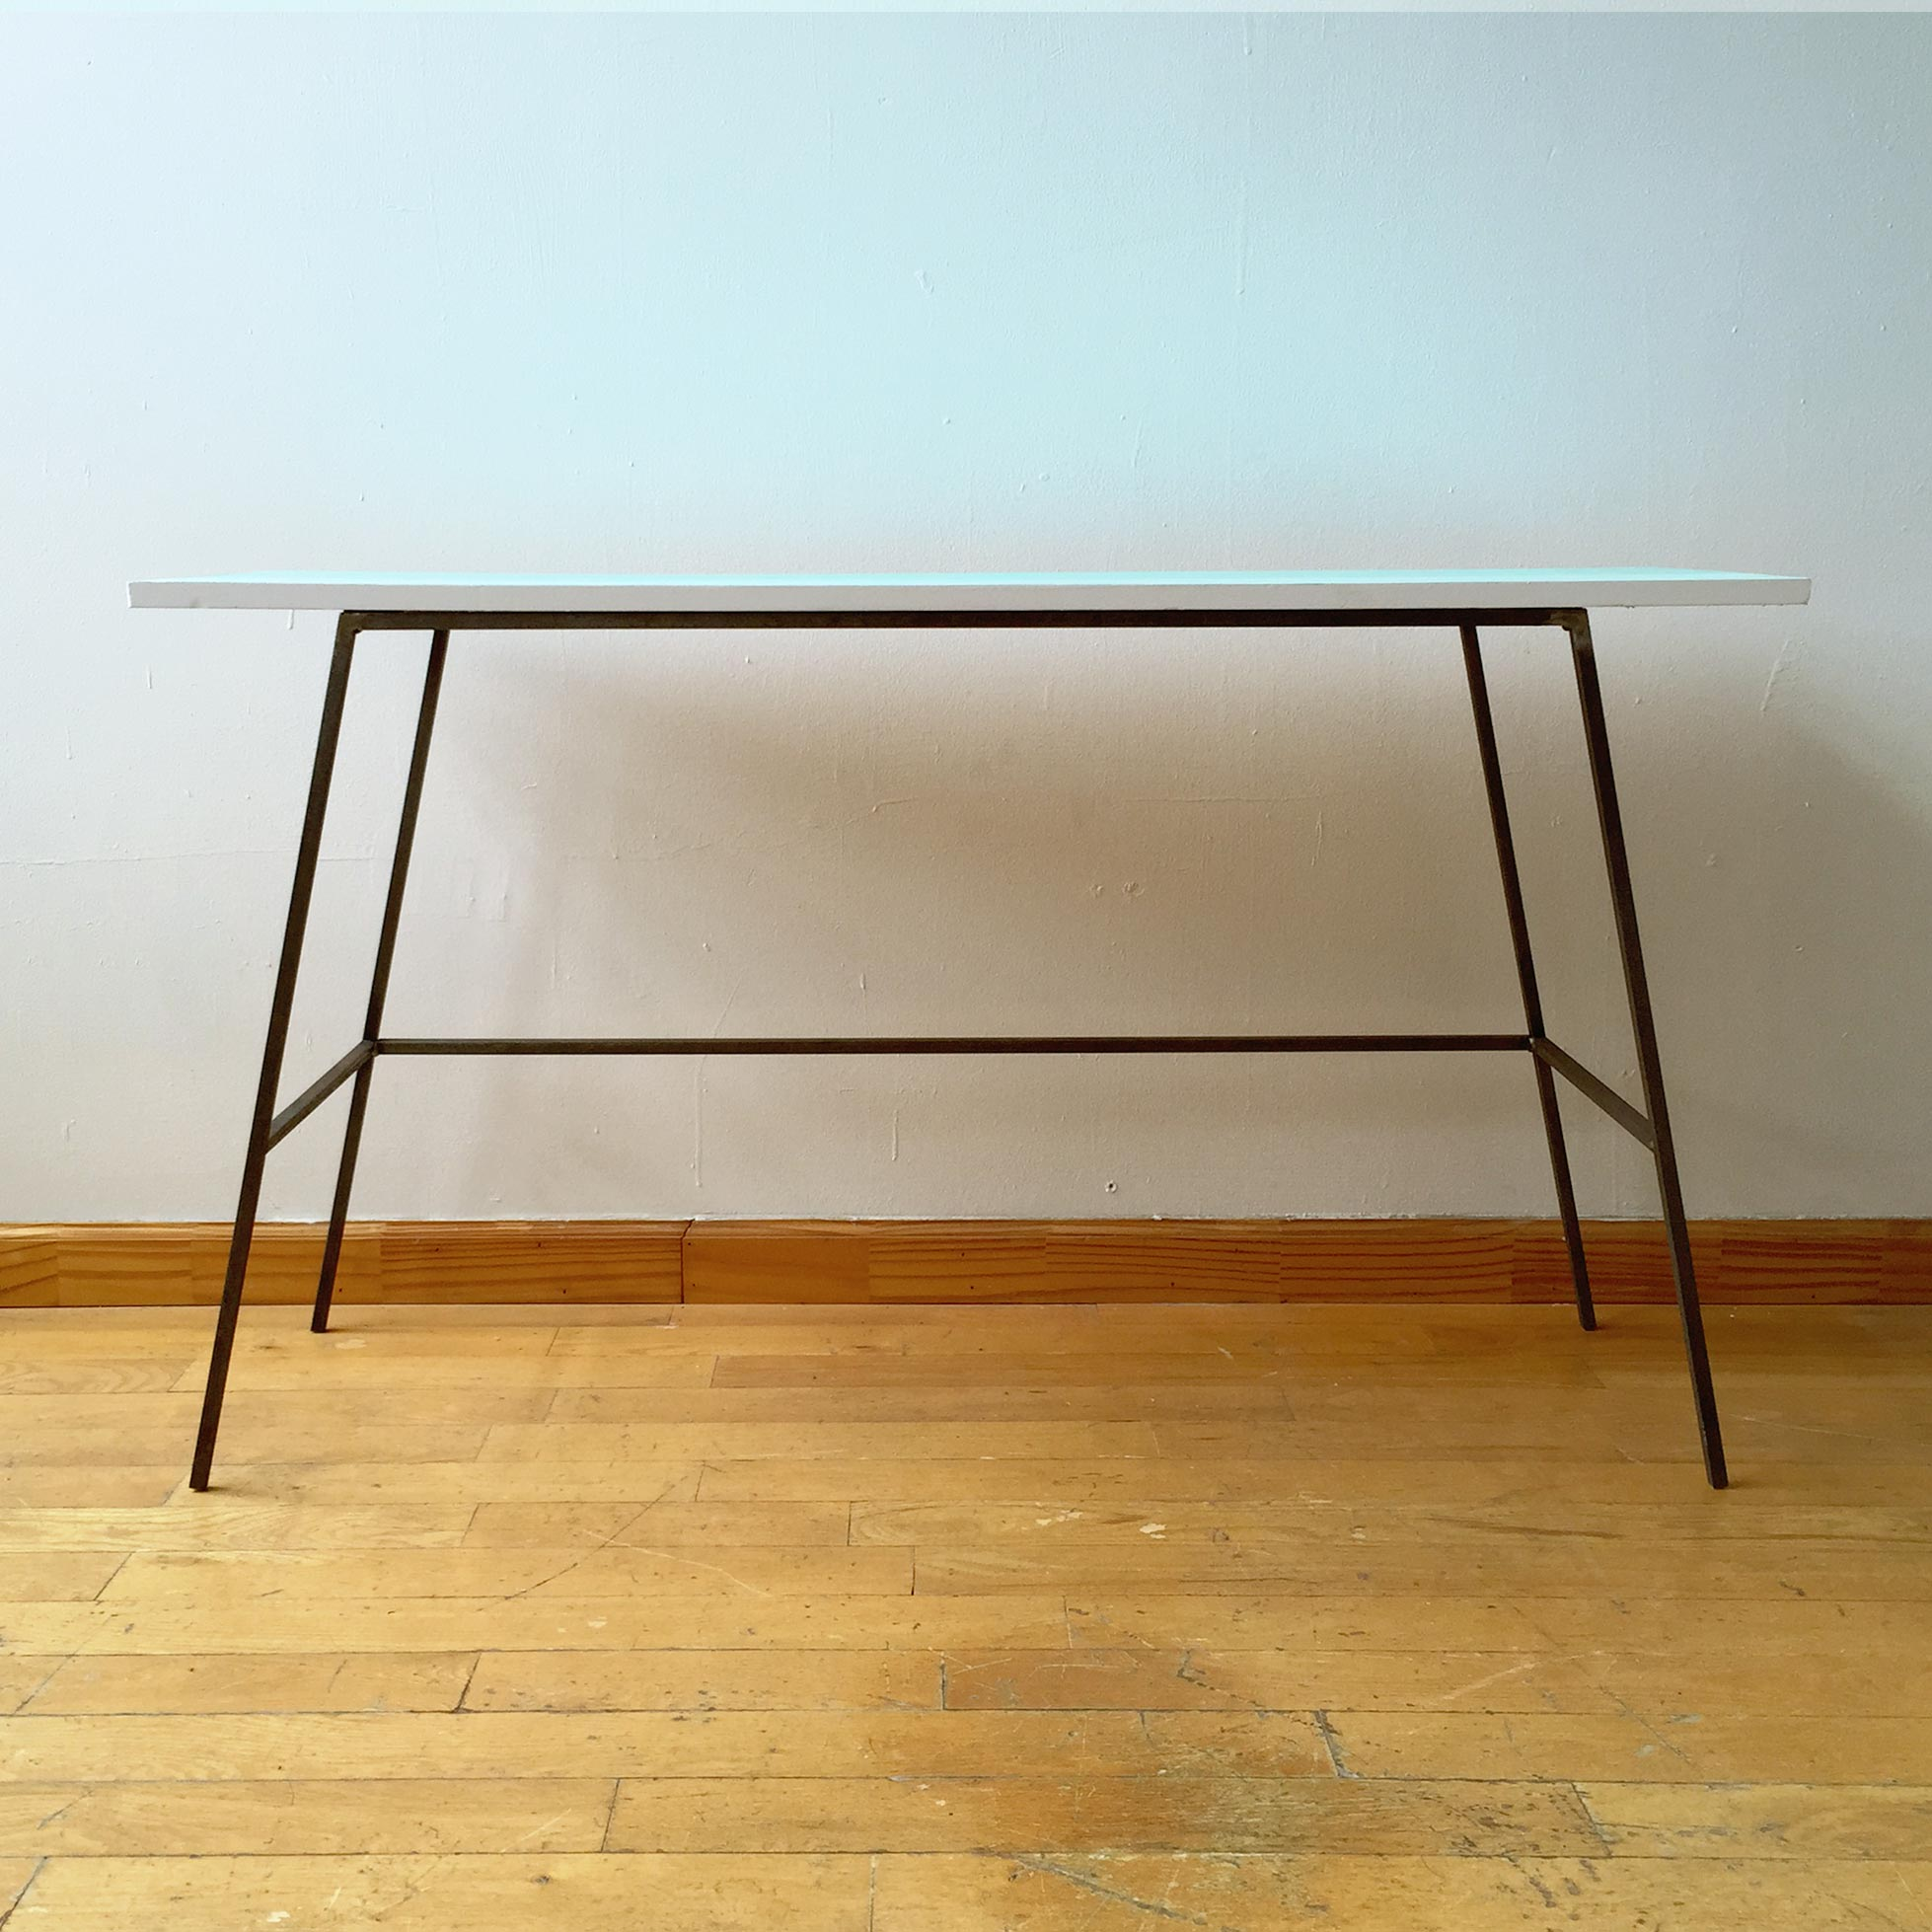 Table1_IMG_1365_front.jpg